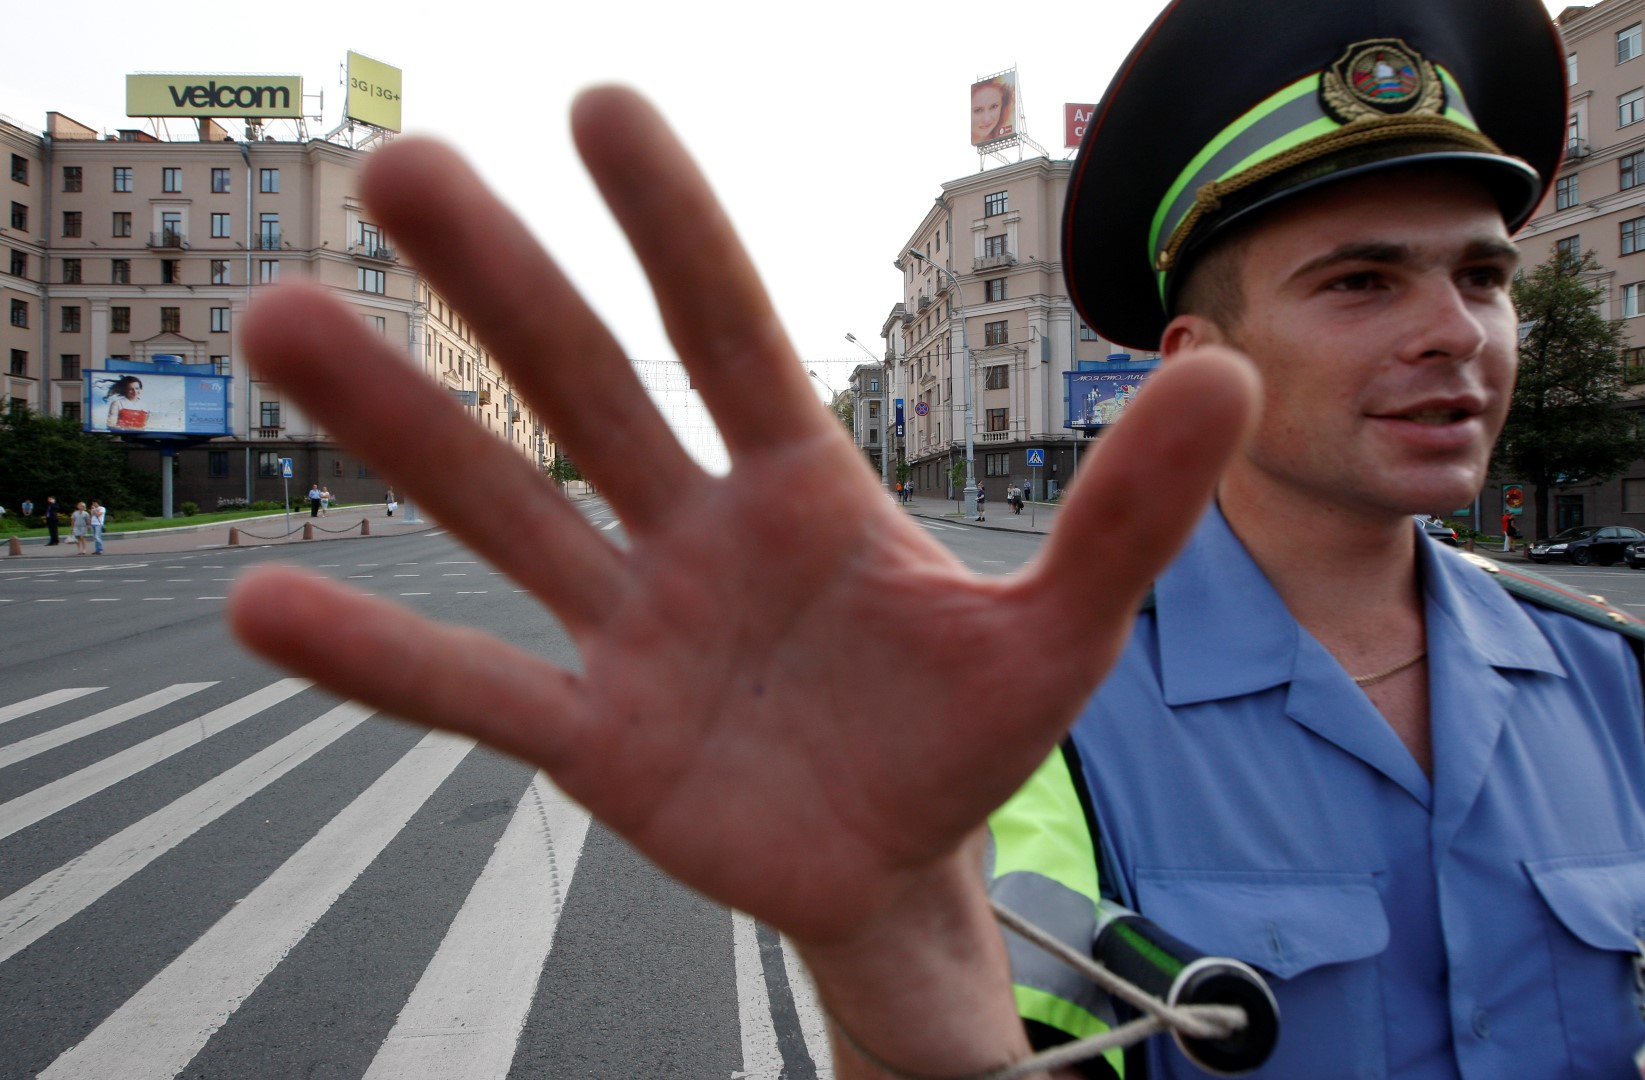 A traffic policeman tries to stop a photographer from taking pictures at an empty Independence avenue in central Minsk, July 21, 2011. The main street in Belarussian capital was blocked to prevent a protest rally against a rise in gasoline prices, which happened on Thursday. REUTERS/Vasily Fedosenko(BELARUS - Tags: CIVIL UNREST ENERGY) - GM1E77M089T01